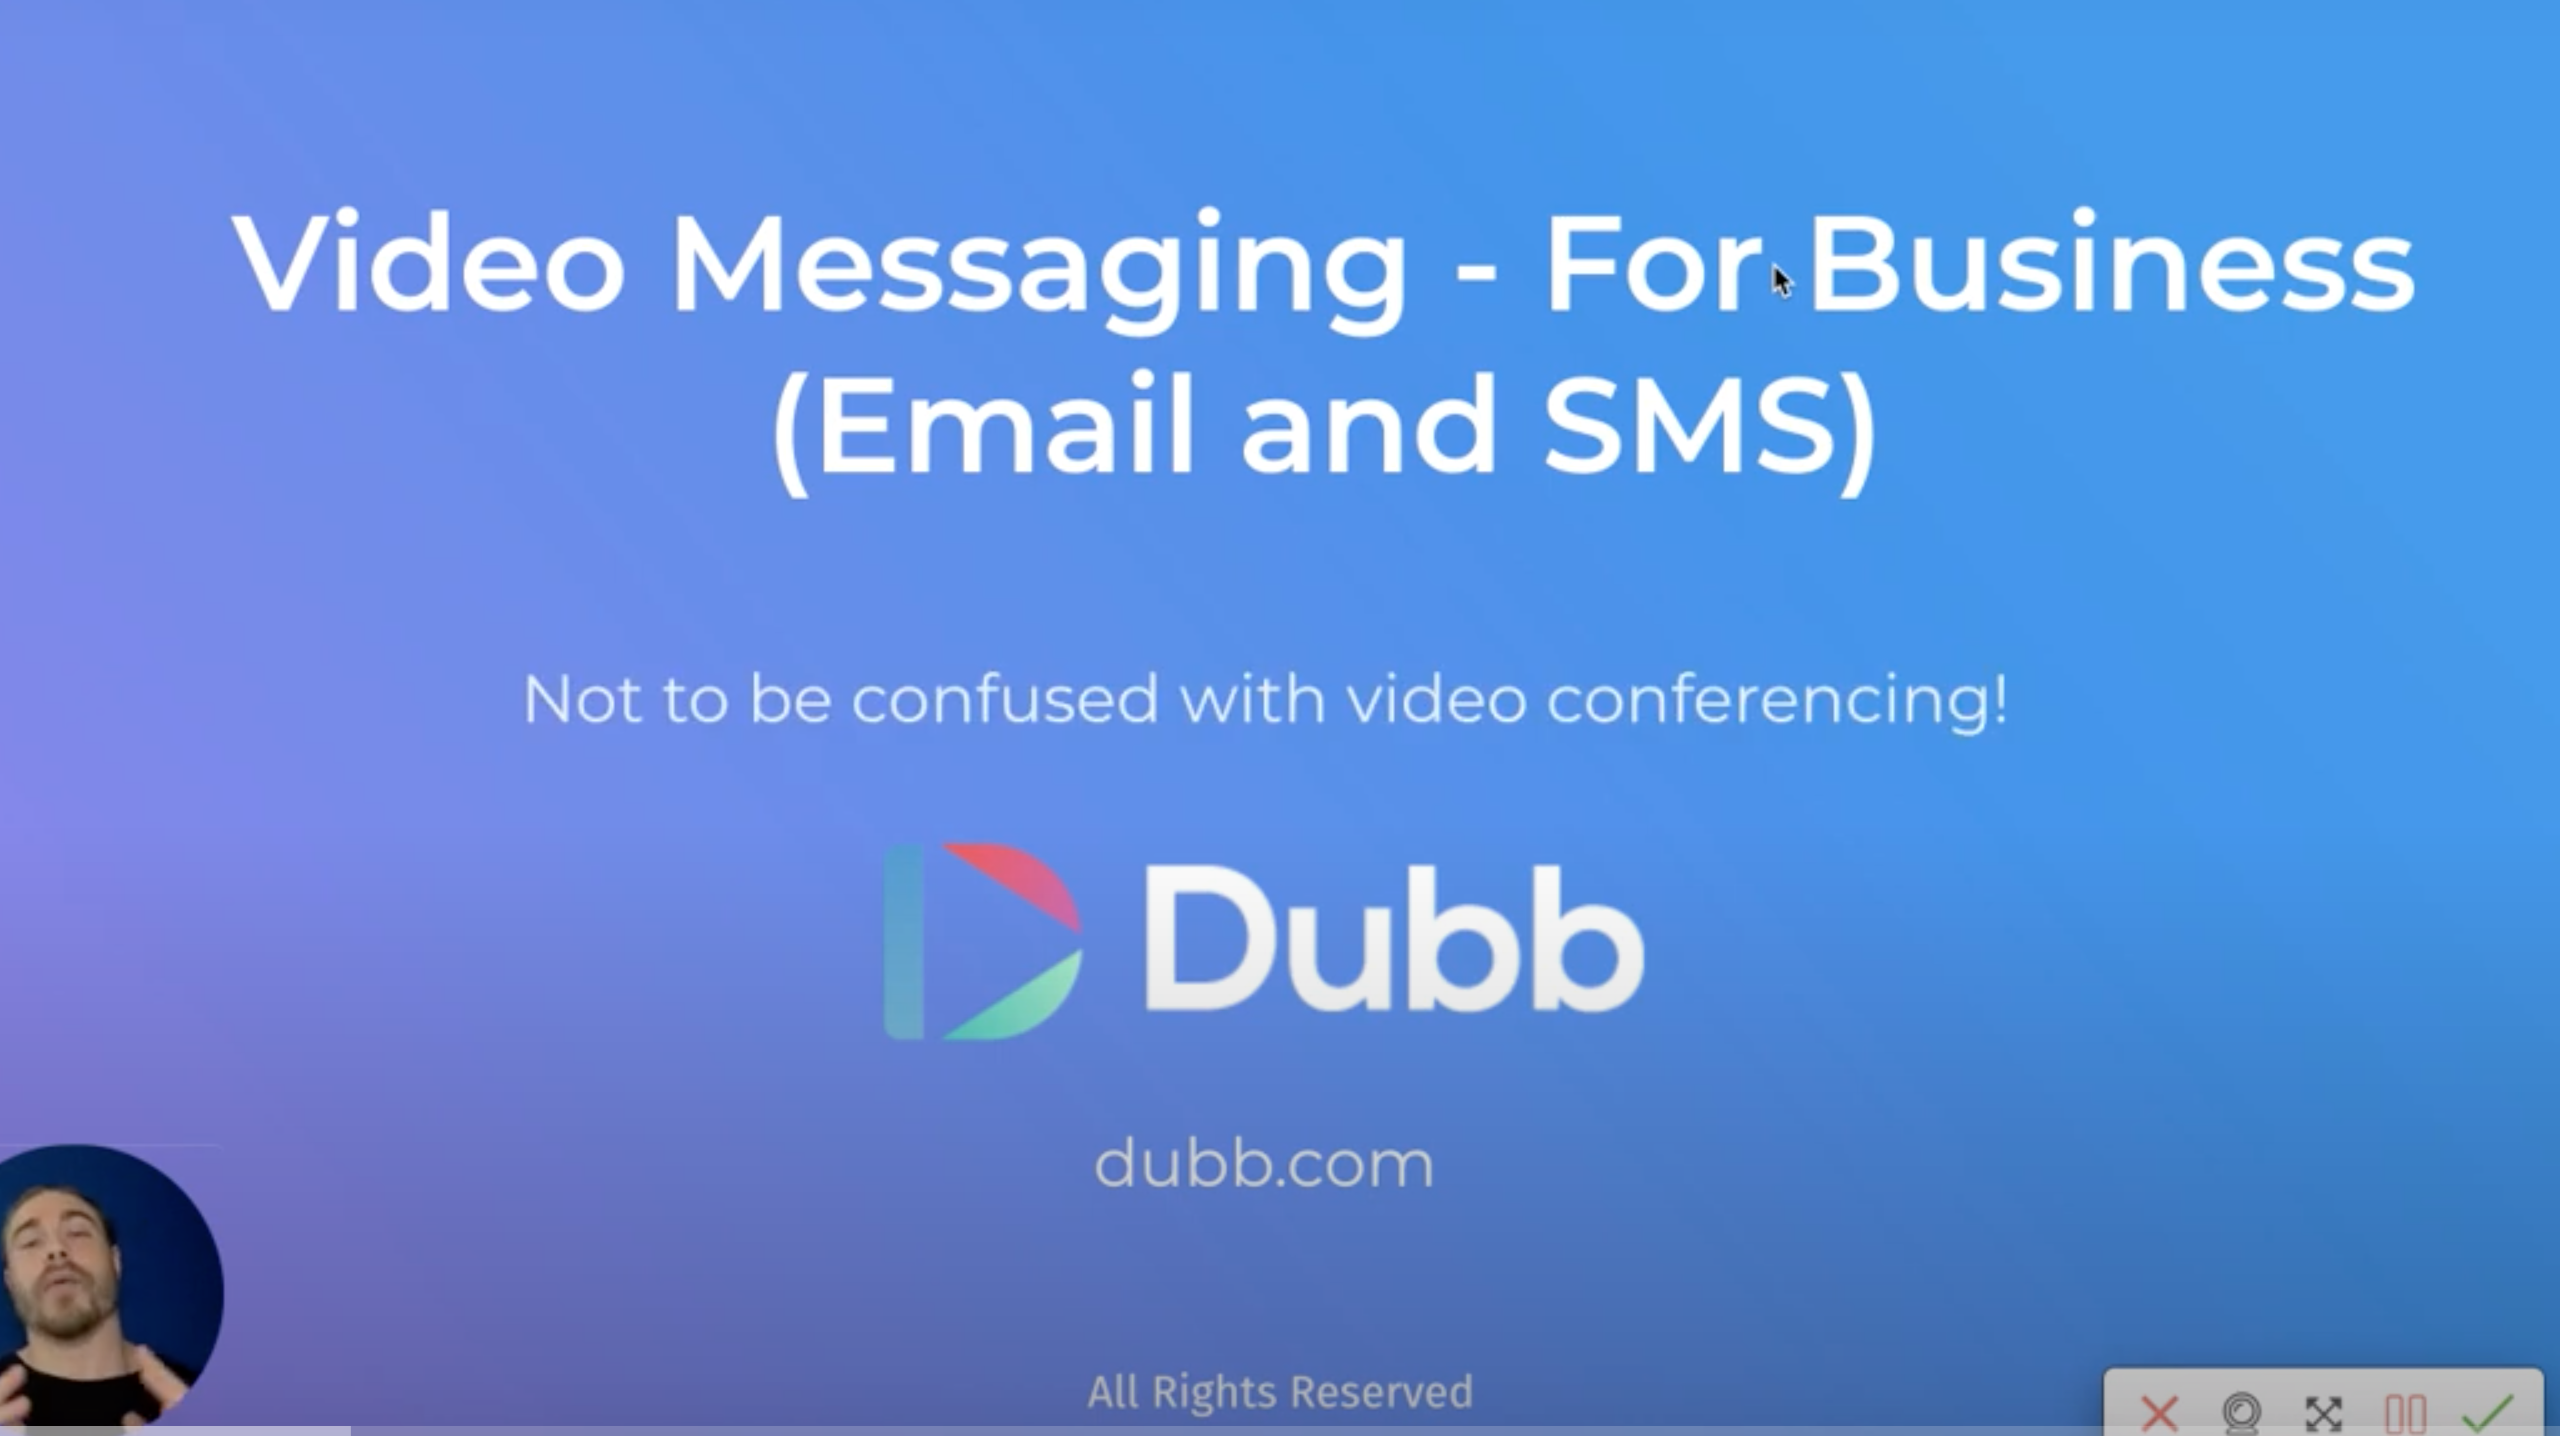 Video Messaging for Business